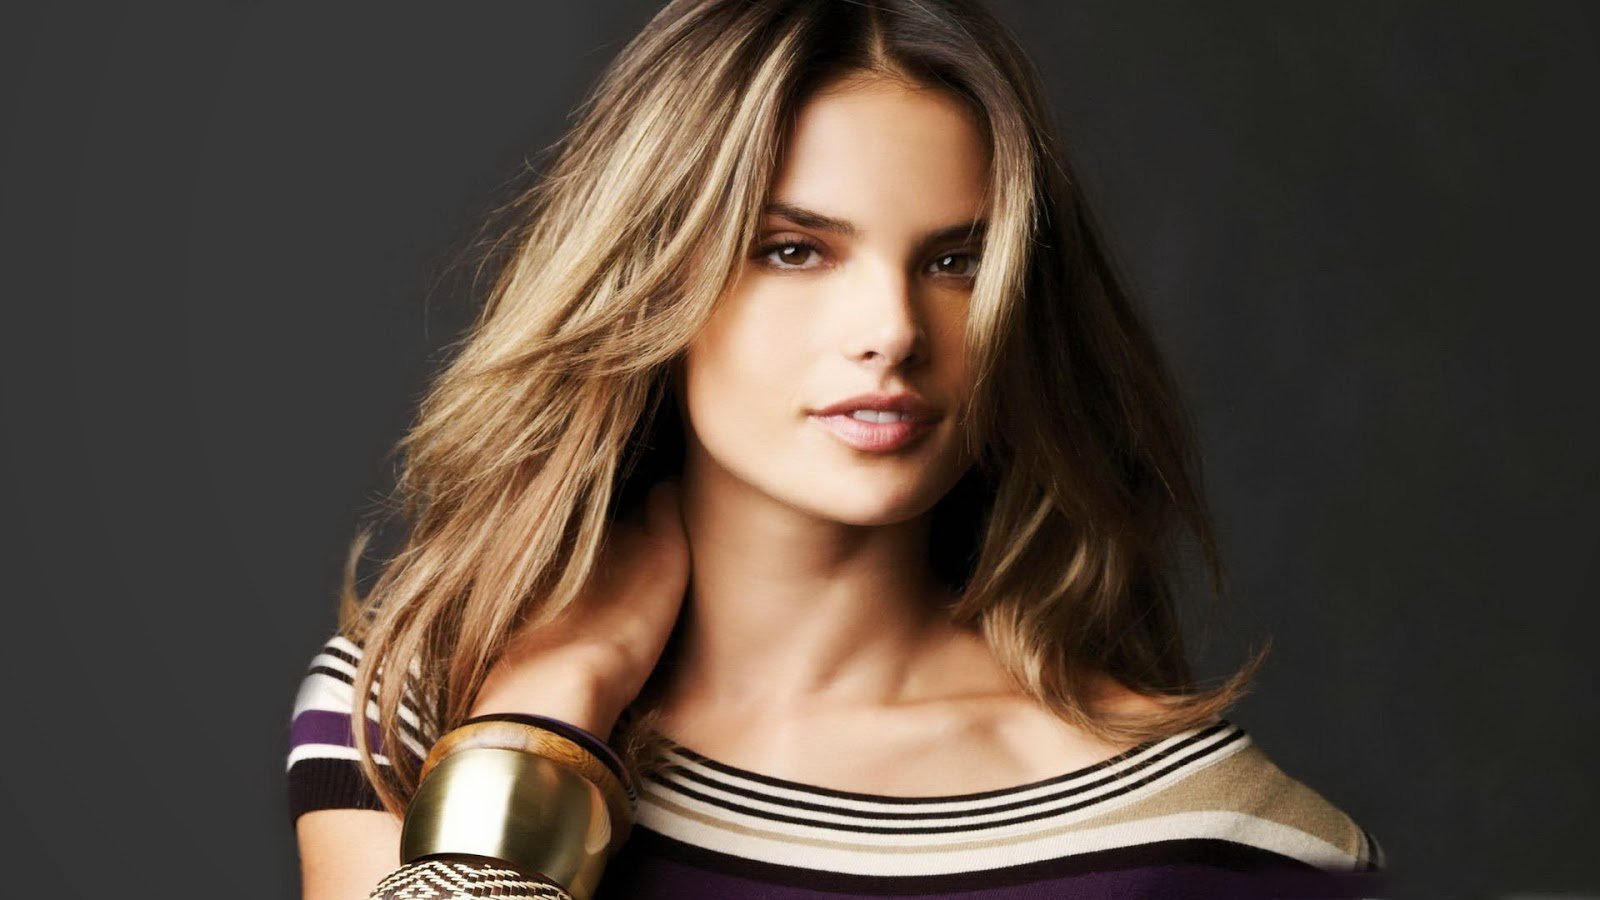 Alessandra Ambrosio 2013 Tattoo Pictures to Pin on Pinterest